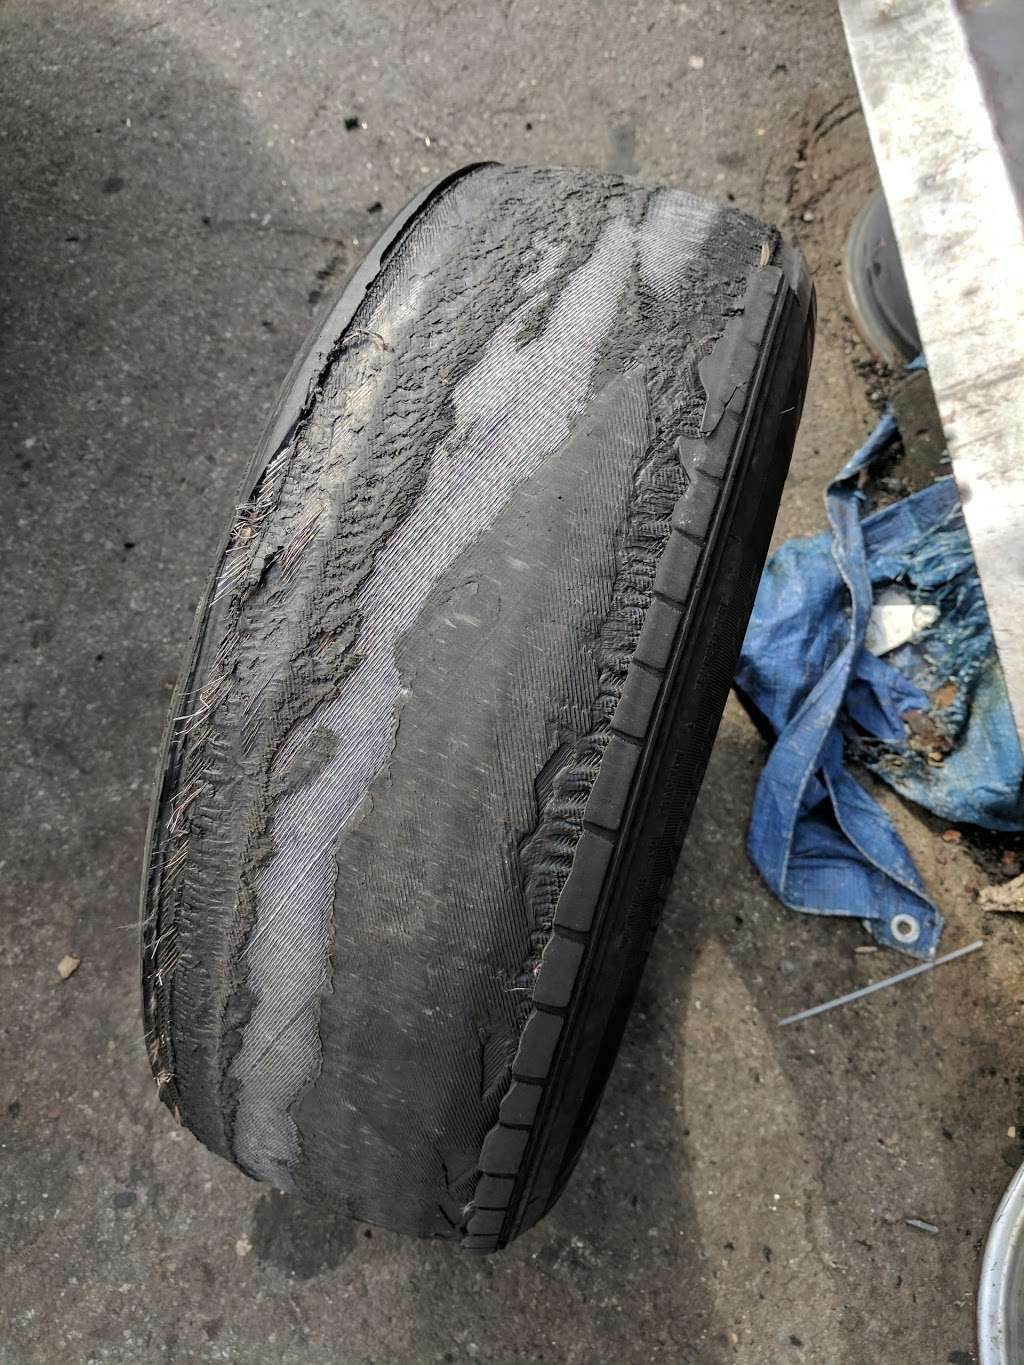 Close Avenue Tire Shop - car repair  | Photo 1 of 2 | Address: 1170 Bronx River Ave, Bronx, NY 10472, USA